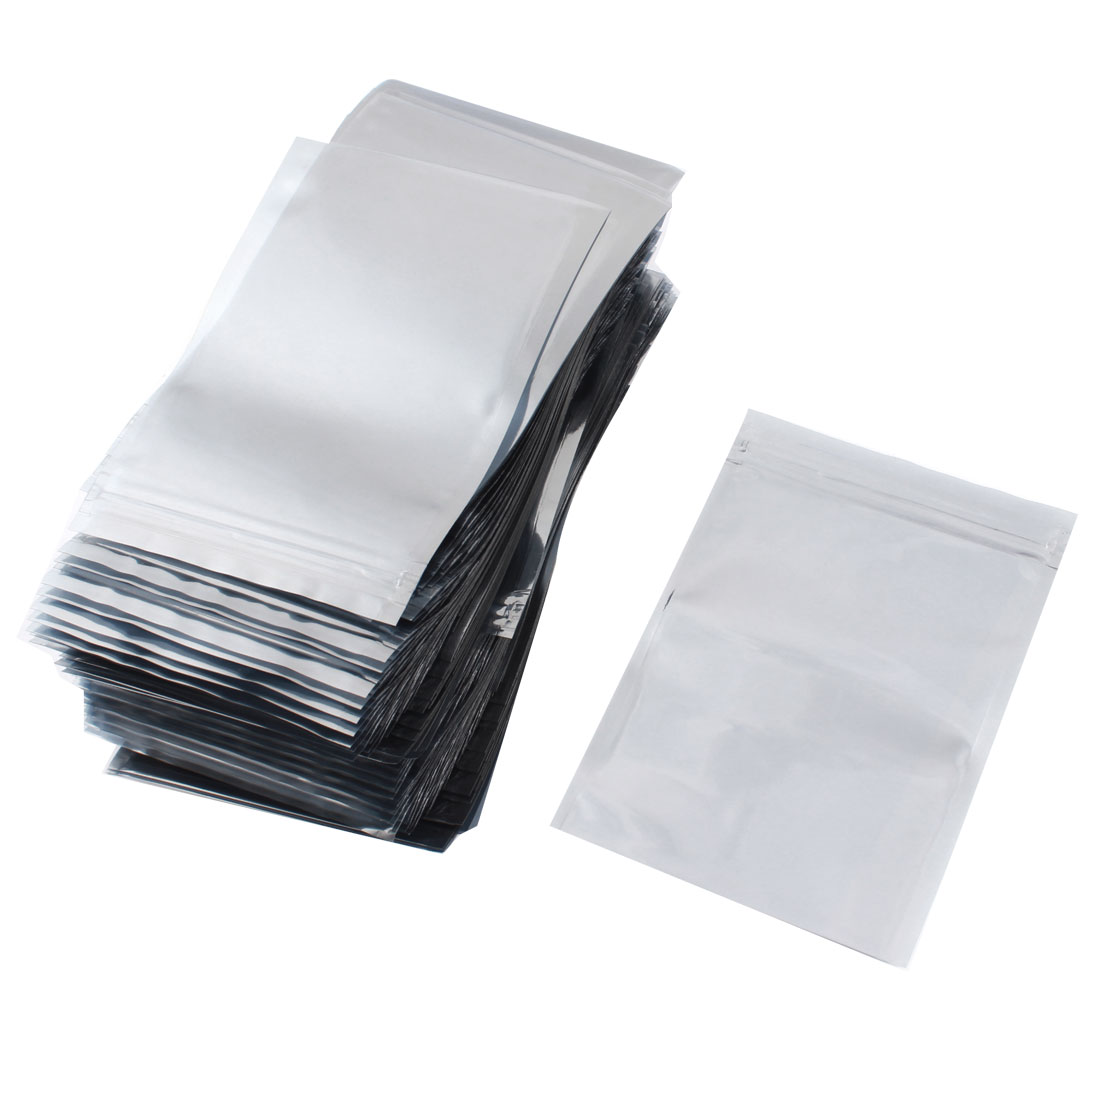 "200Pcs 4.5"" x 6"" 110x150mm ESD Anti Static Shielding Bags Holders"